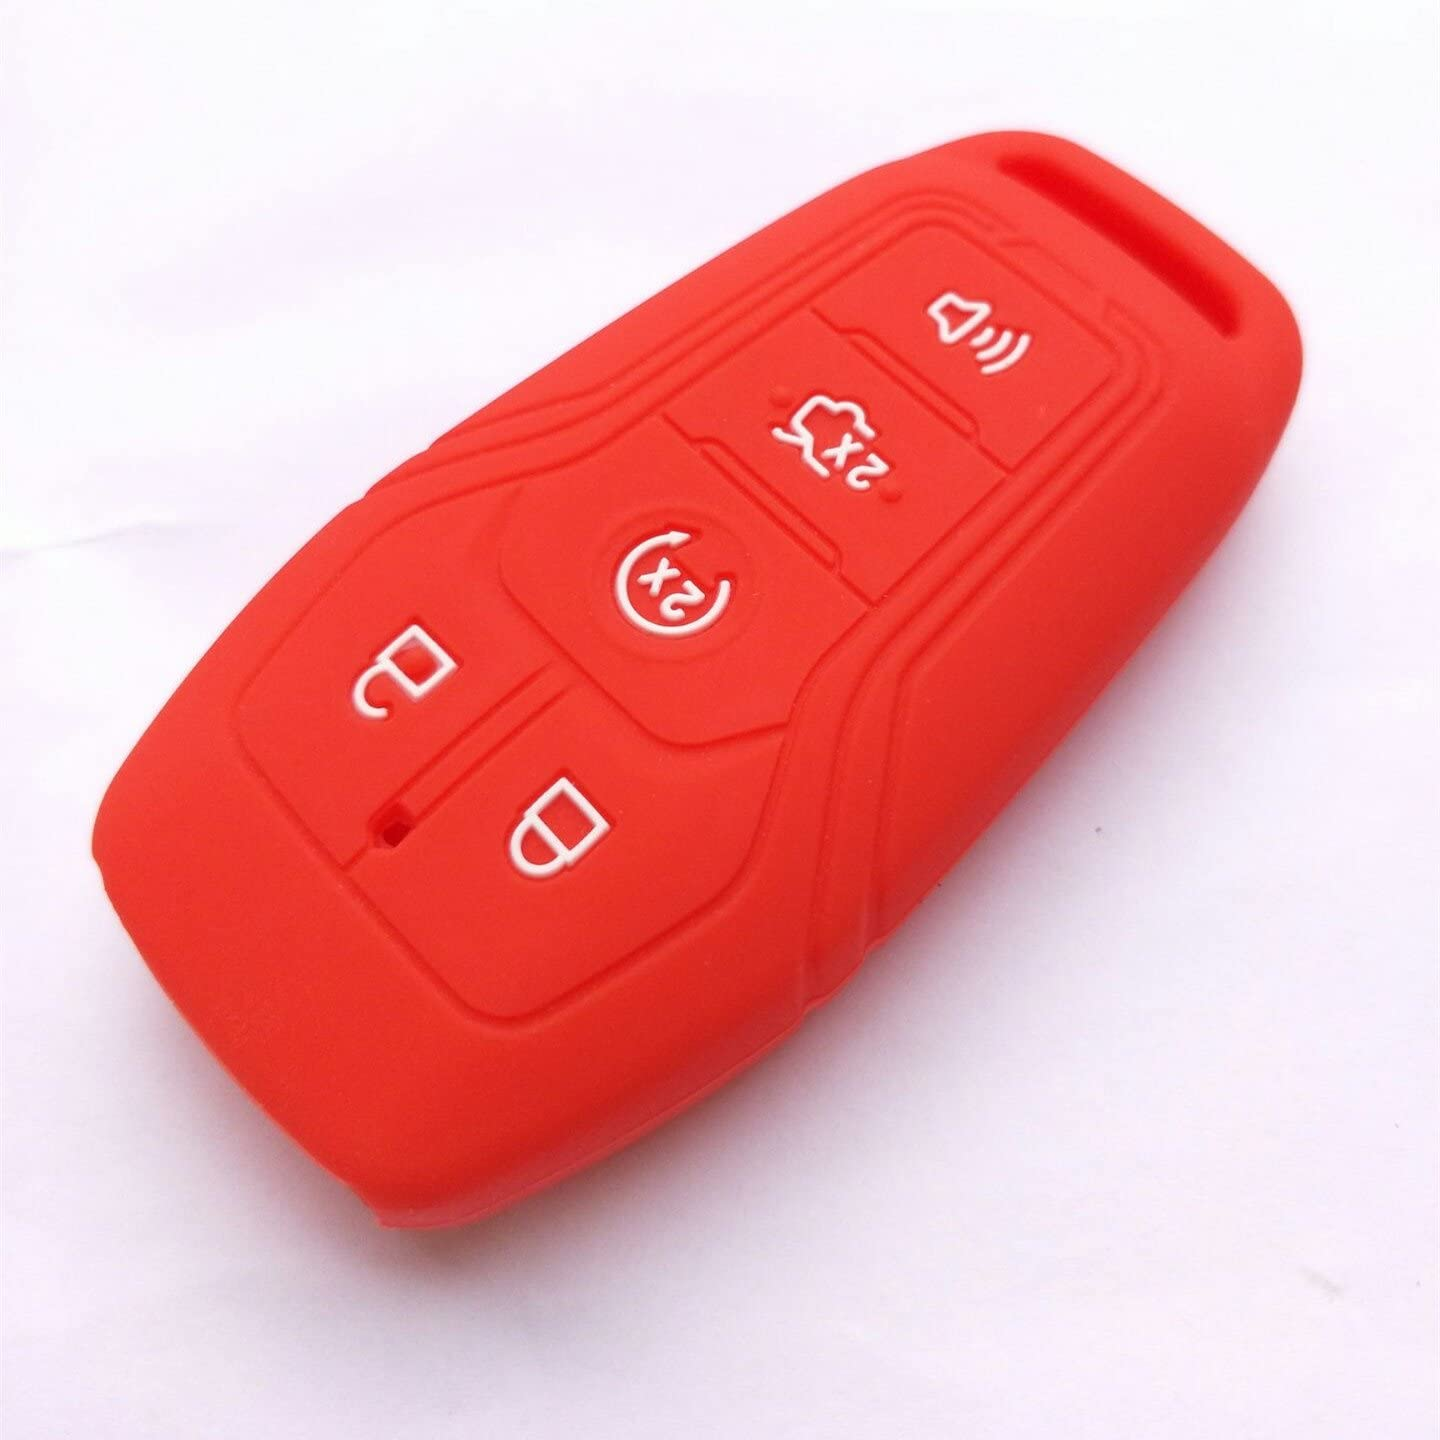 3Pcs MJKEY New 5 Buttons Black Red Blue Silicone Key Case Cover Fob Remote Skin Holder Keyless Entry for FORD Fusion Mustang F-550 F-450 F-150 Edge EXPLORER LINCOLN MKZ MKC M3N-A2C31243300